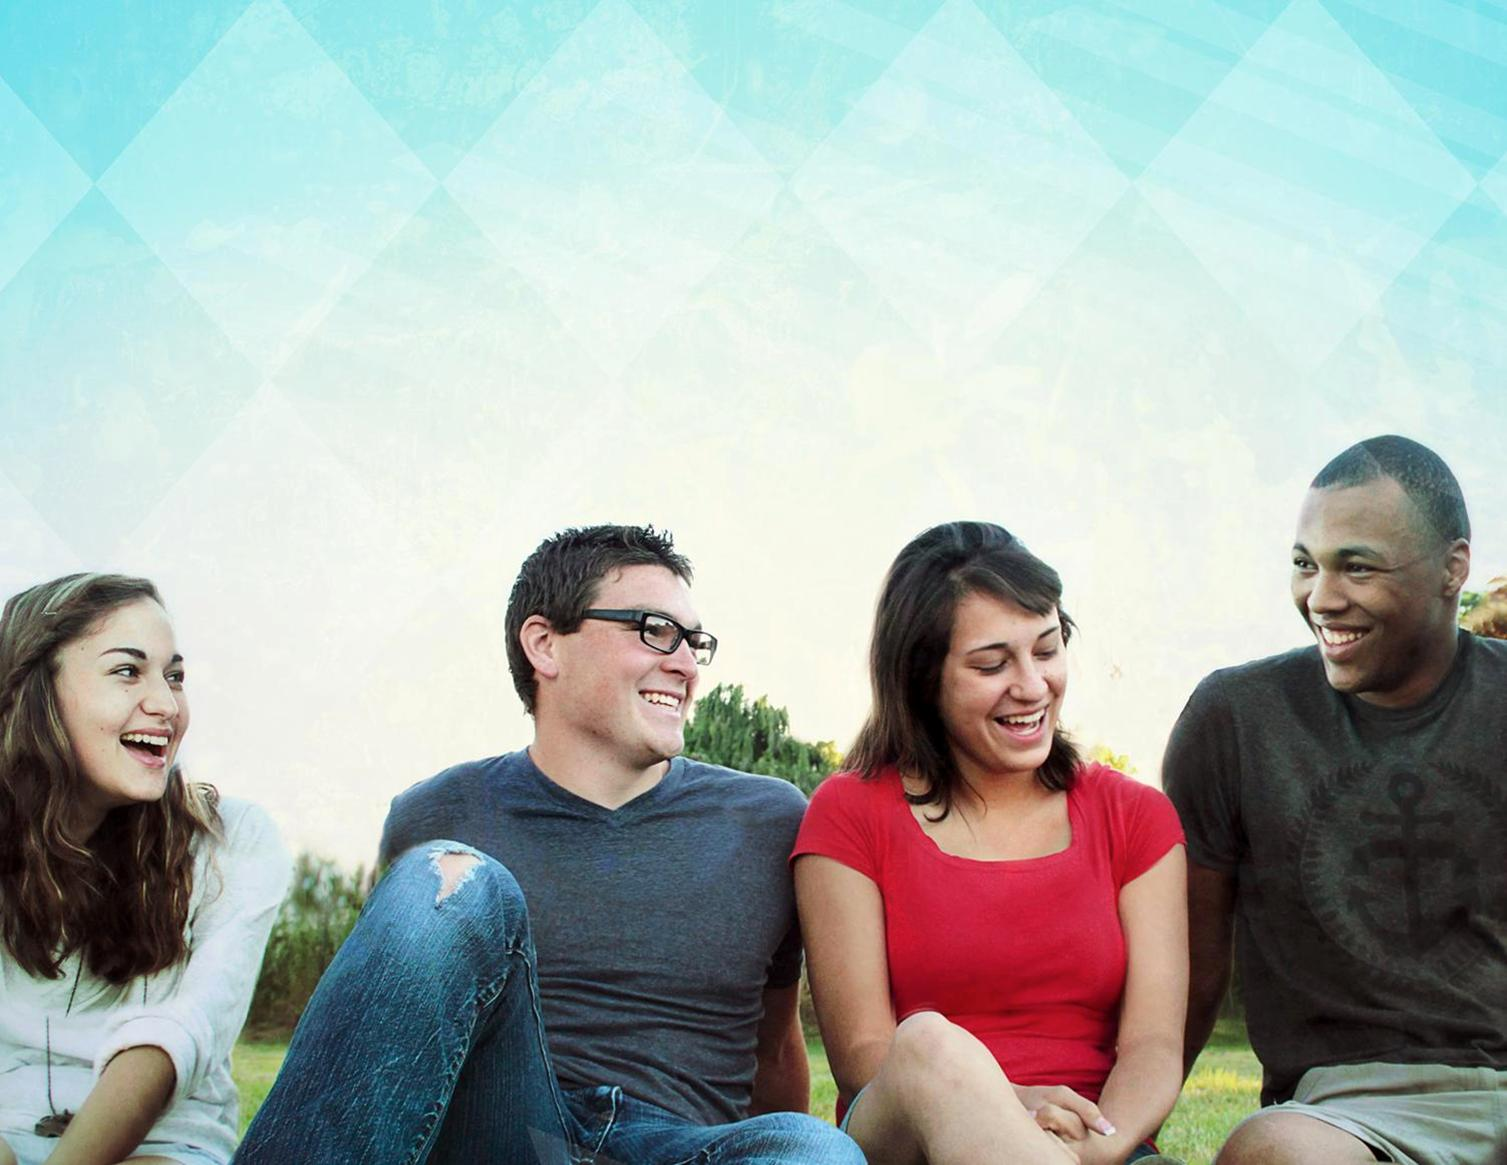 youth group web poster.jpg